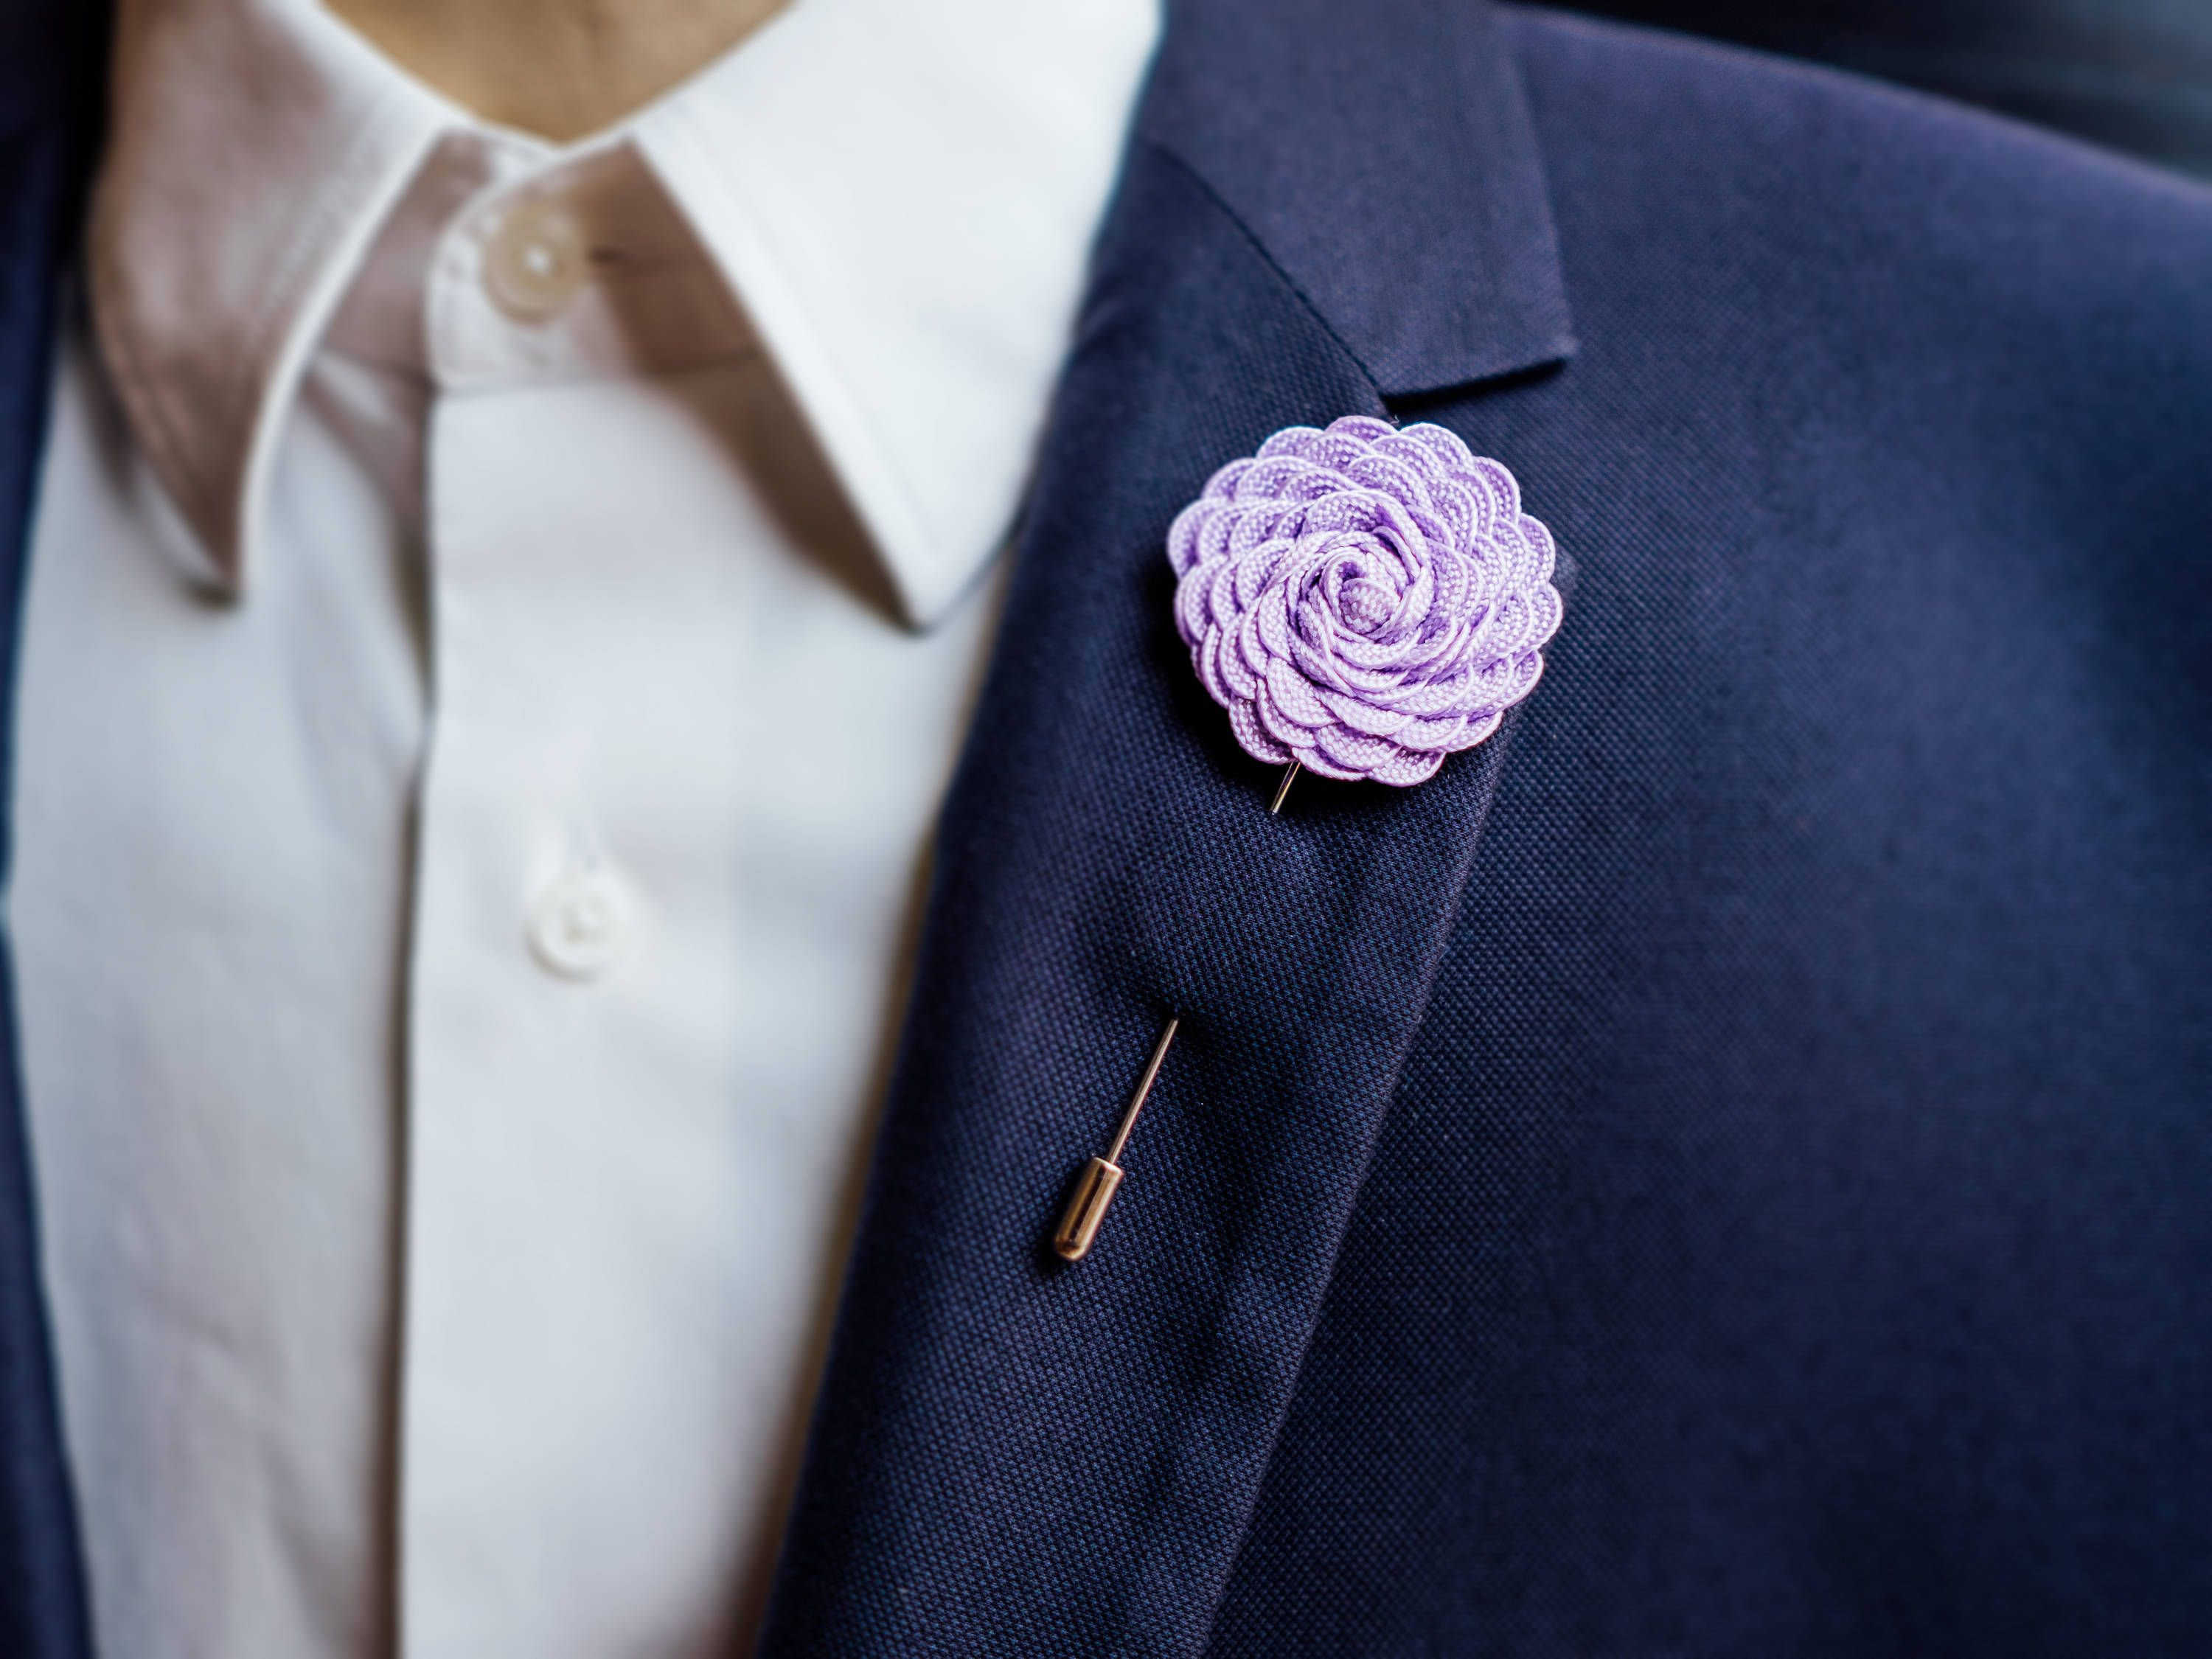 brooch by accessories clip m cheap suit fashion collar man product dhgate new com online needle emblem